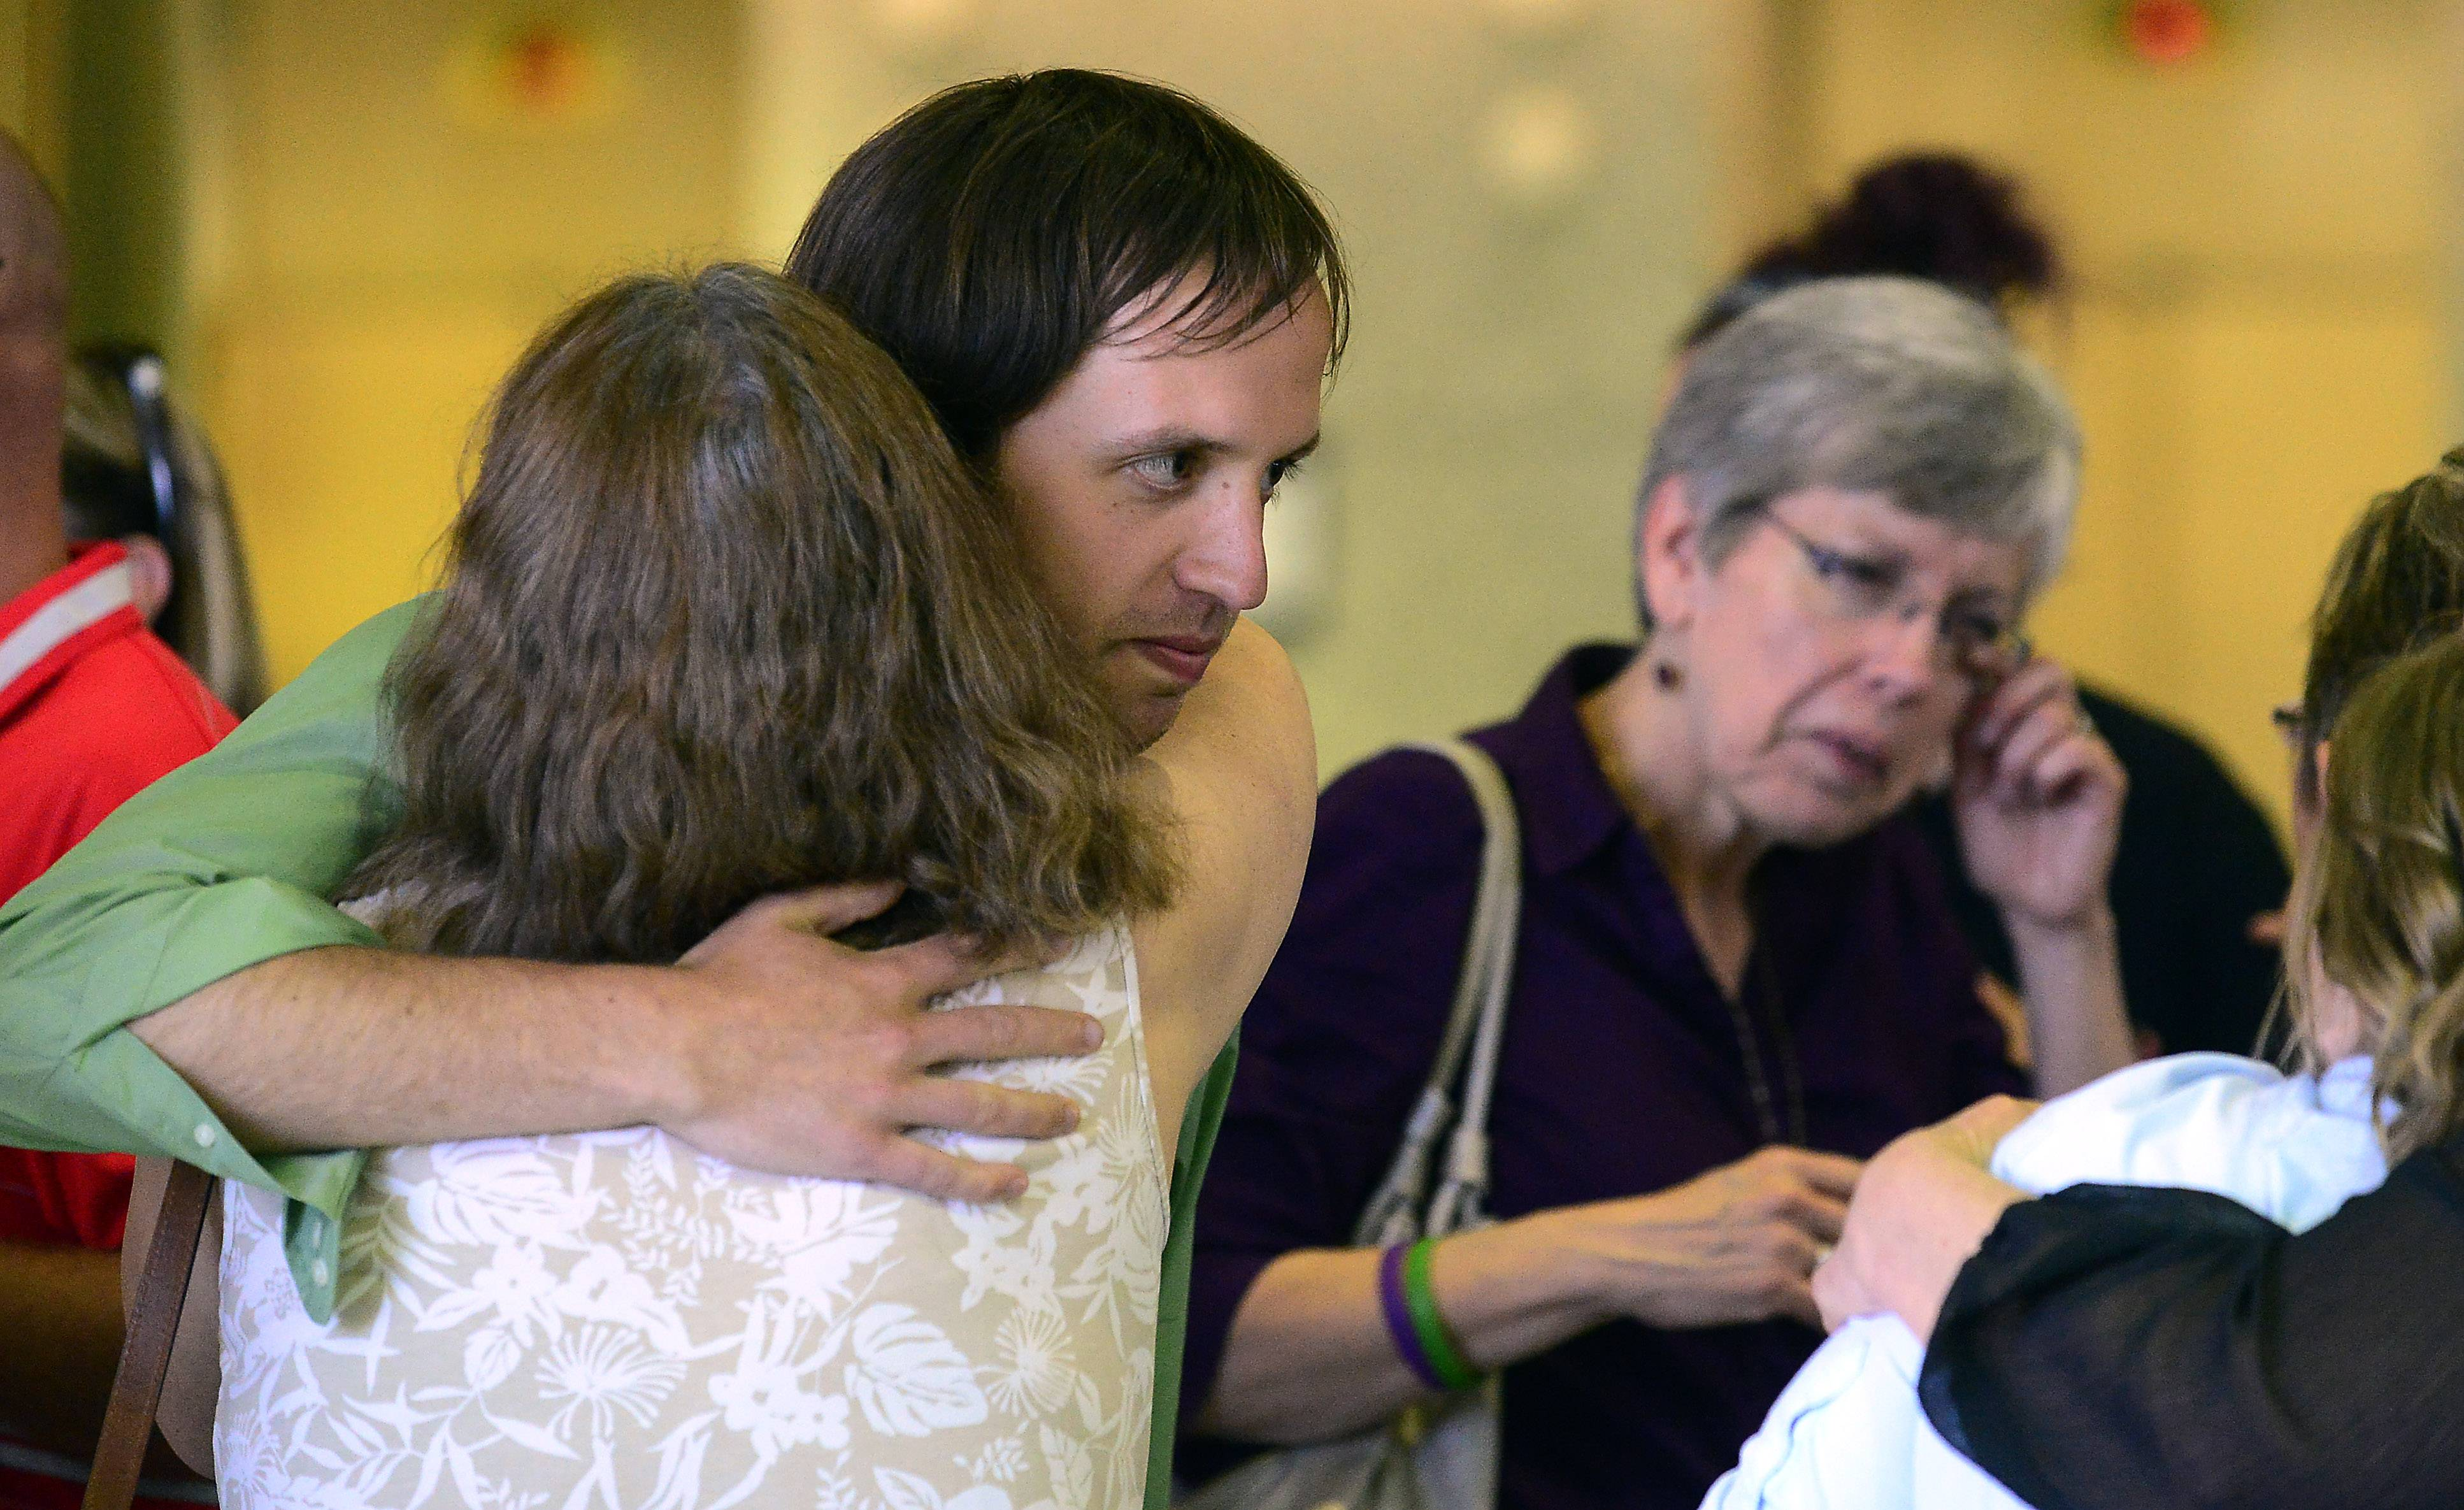 An emotional Jeff Engelhardt gets hugs from supporters as his mother Shelly wipes away tears after D'Andre Howard's conviction Tuesday. Howard was found guilty on all counts in the 2009 stabbing deaths of three members of the Engelhardt family in their Hoffman Estates home.